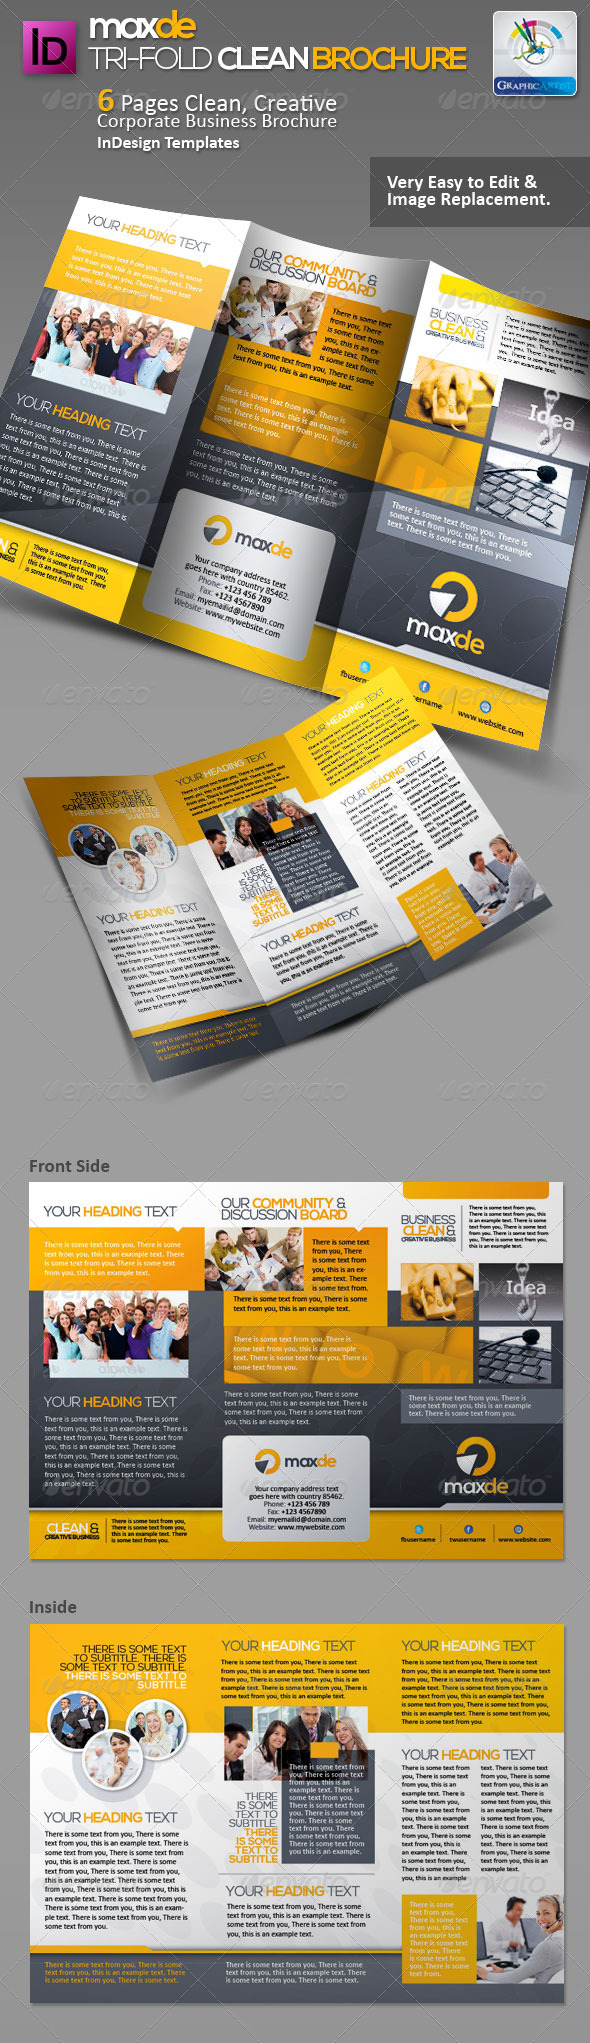 Maxde Tri-fold Clean Brochure - Corporate Brochures